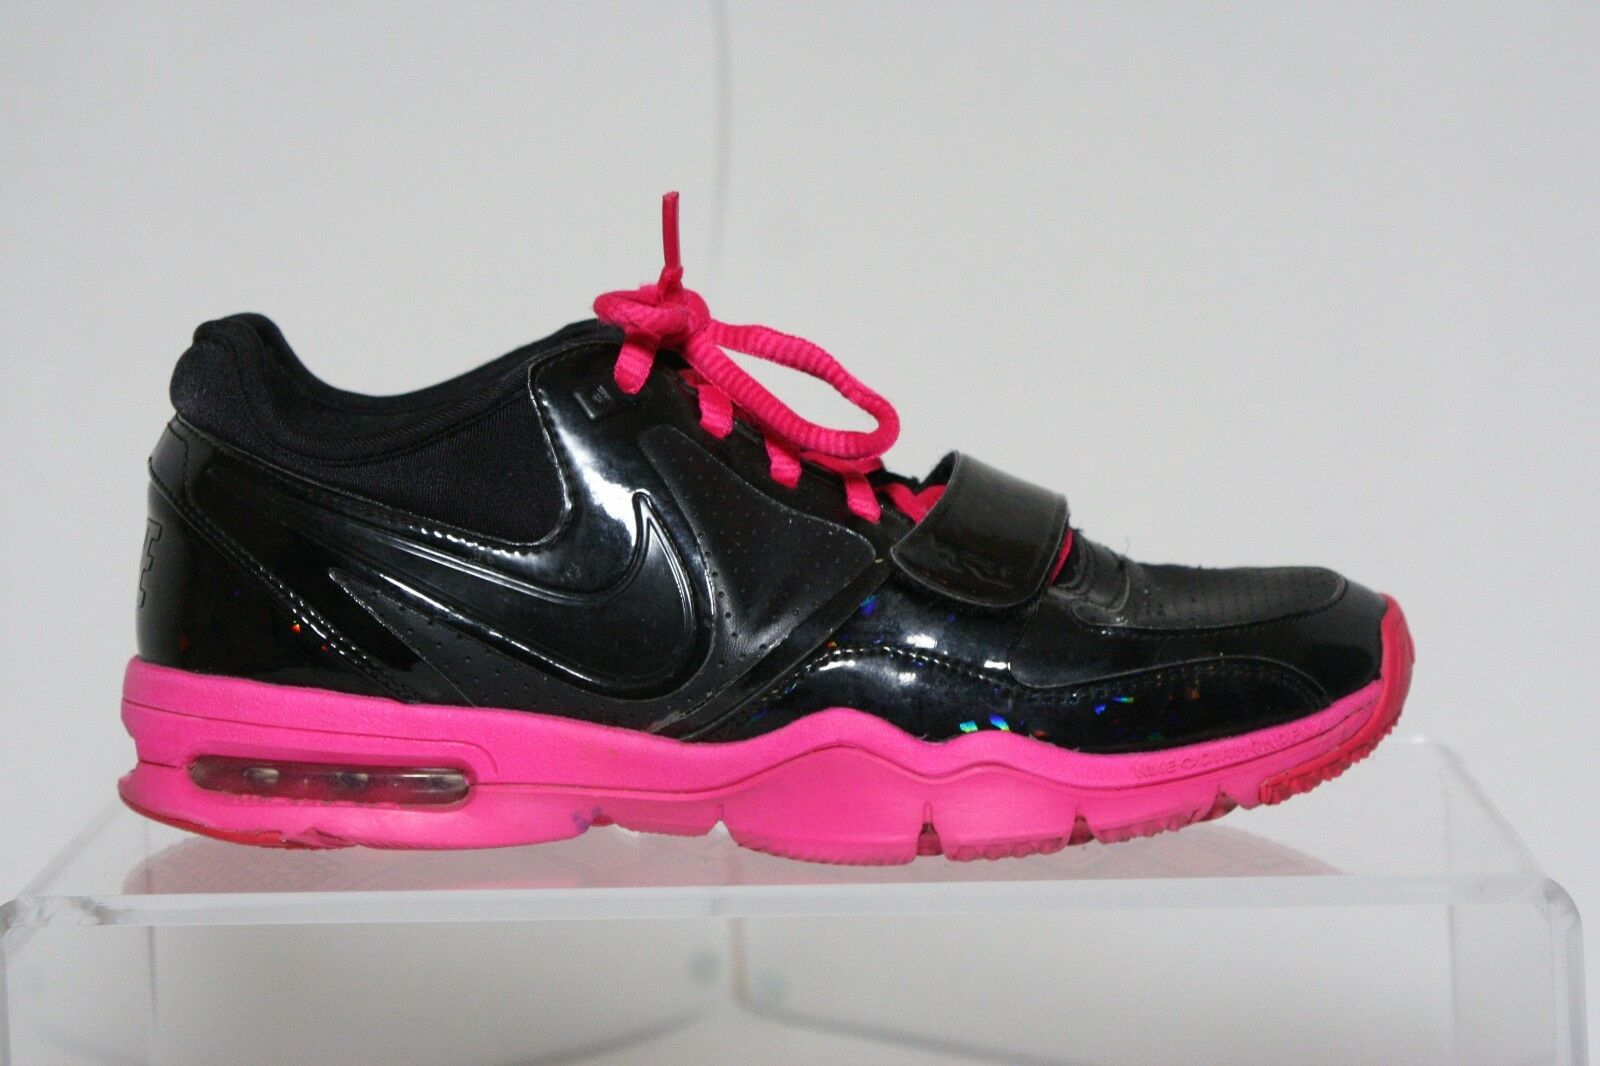 Nike Air Max Attack Trainer 1 10' Sneaker Hip Multi Pink Black Women 8 Athletic